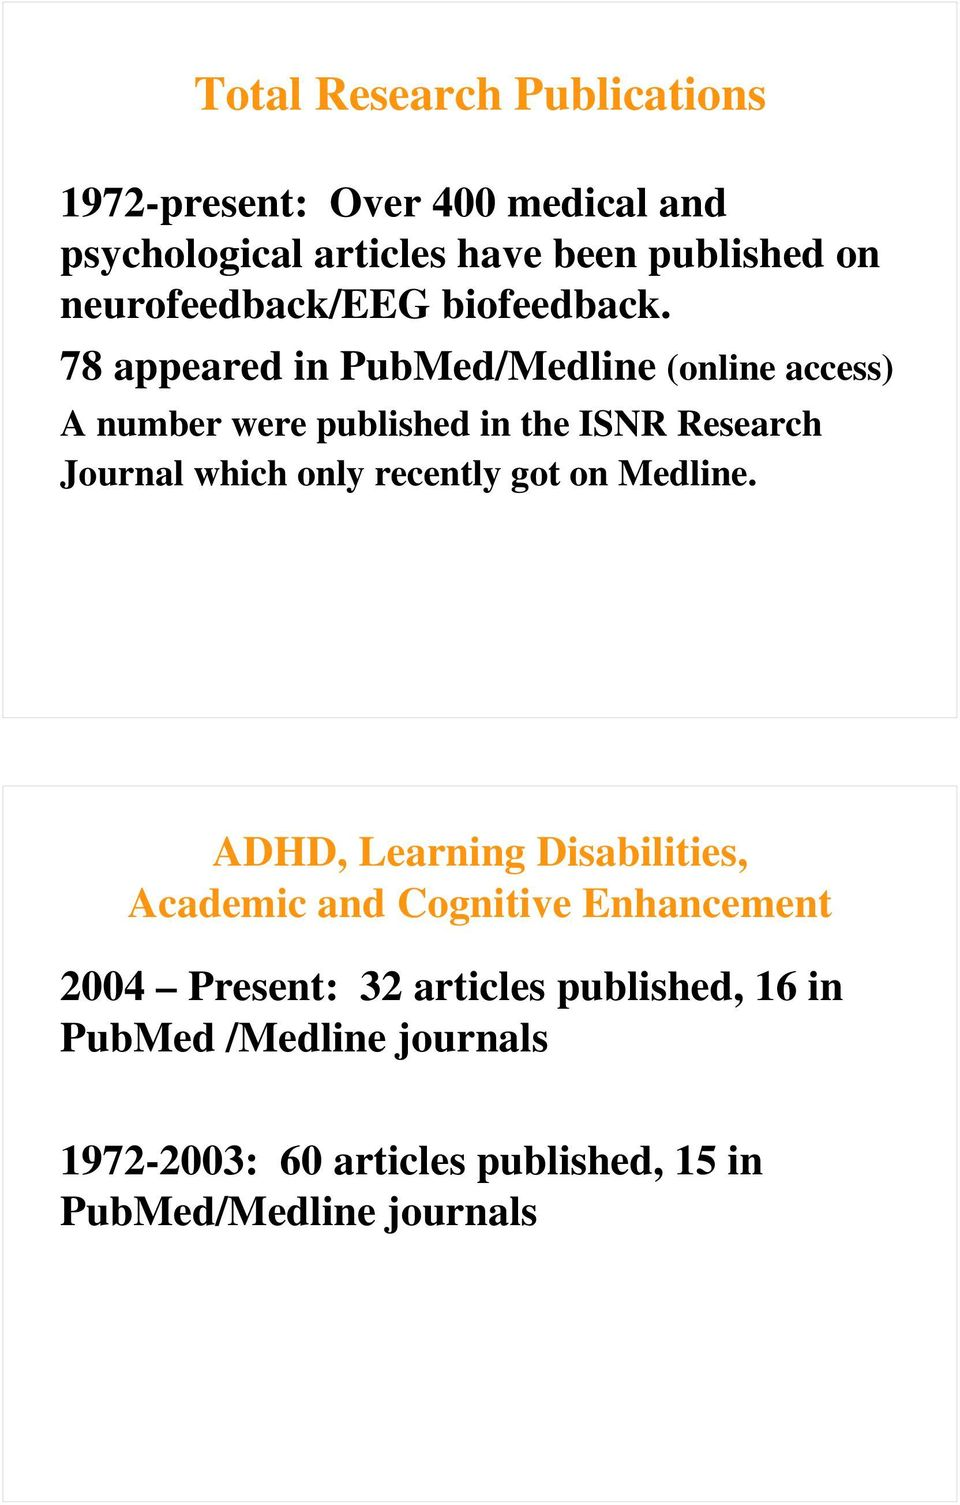 78 appeared in PubMed/Medline (online access) A number were published in the ISNR Research Journal which only